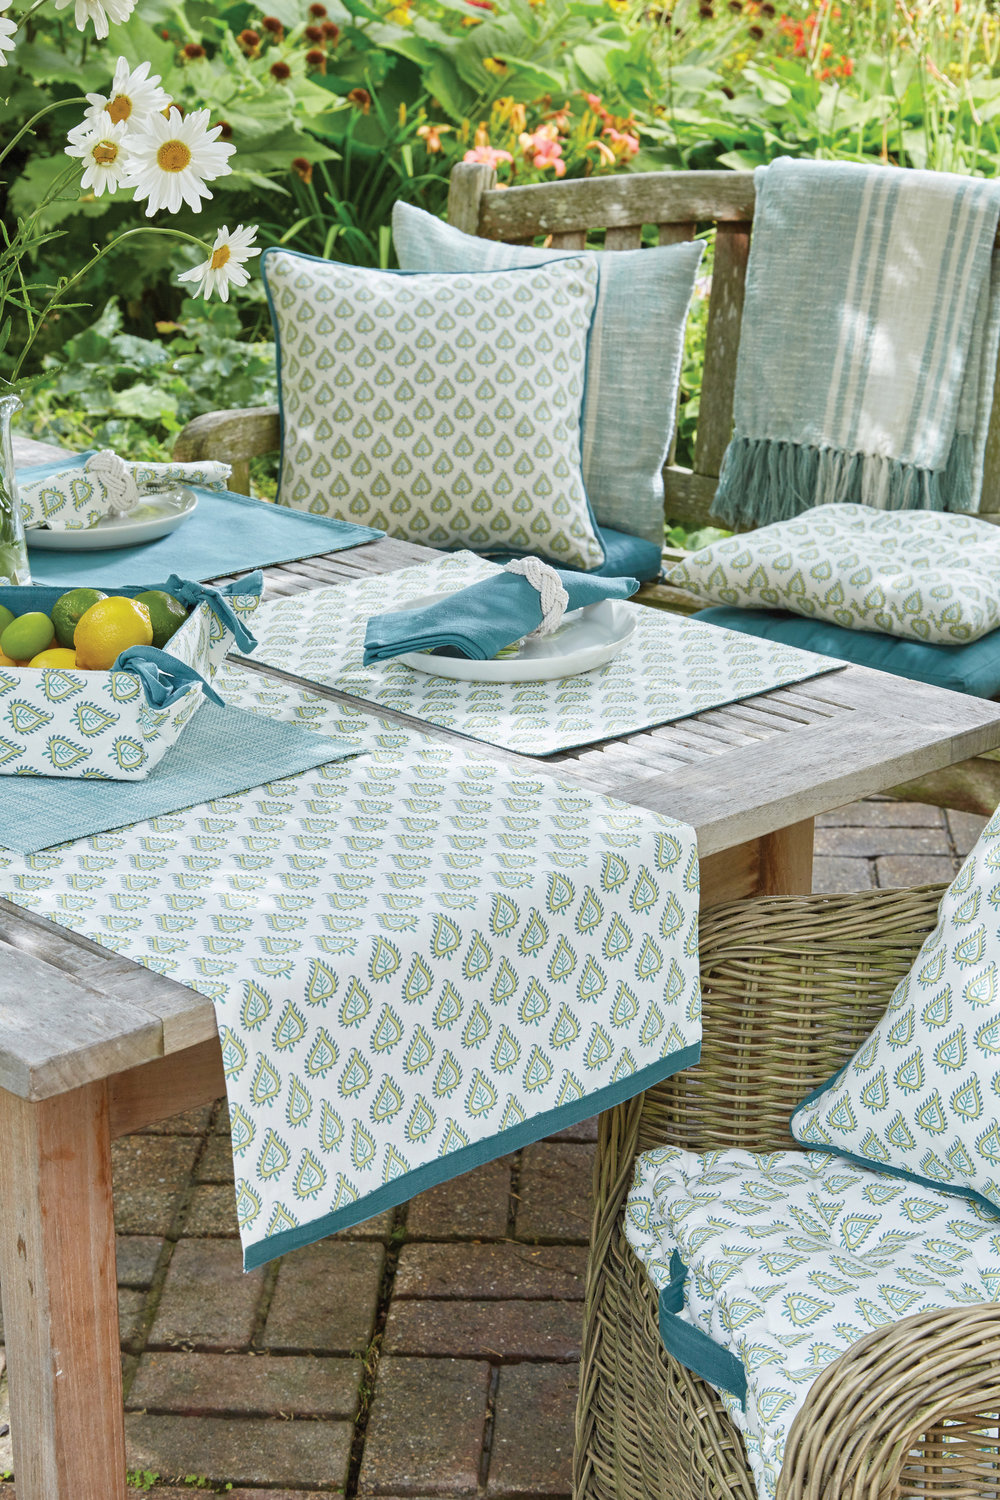 'Les Indiennes'   A wood block inspired print on 100% porcelain coloured cotton, this collection features cool lagoon shades;teal and a relaxed ochre. Accompanying plain fabrics and indoor/outdoor woven placemats complete a fresh summer look.